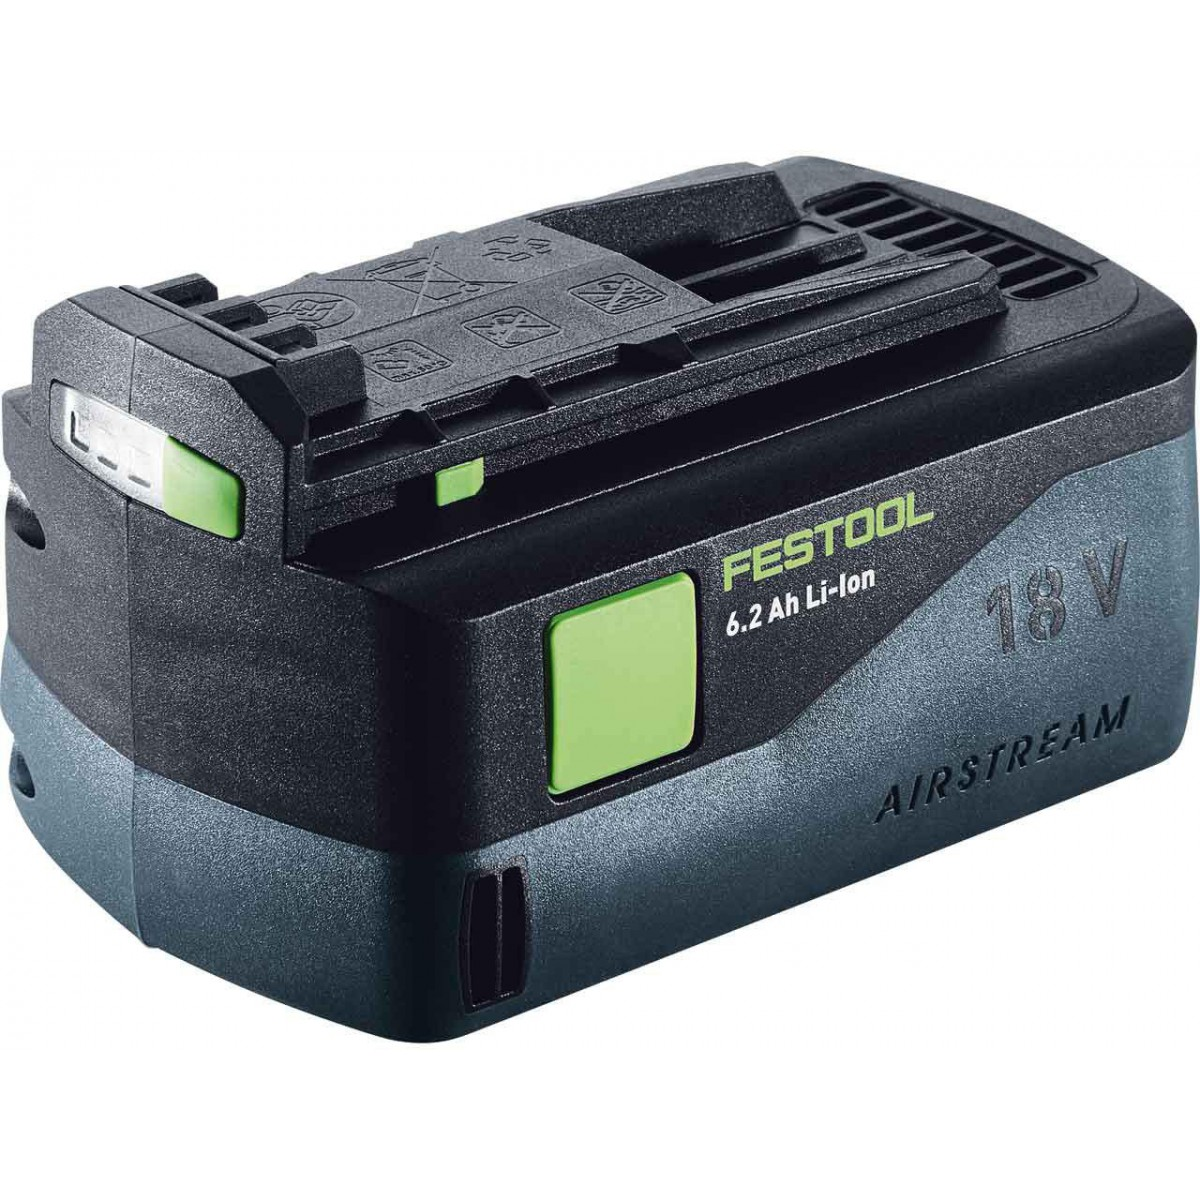 Festool BP 18 Li 6.2Ah AS Batterí 201774